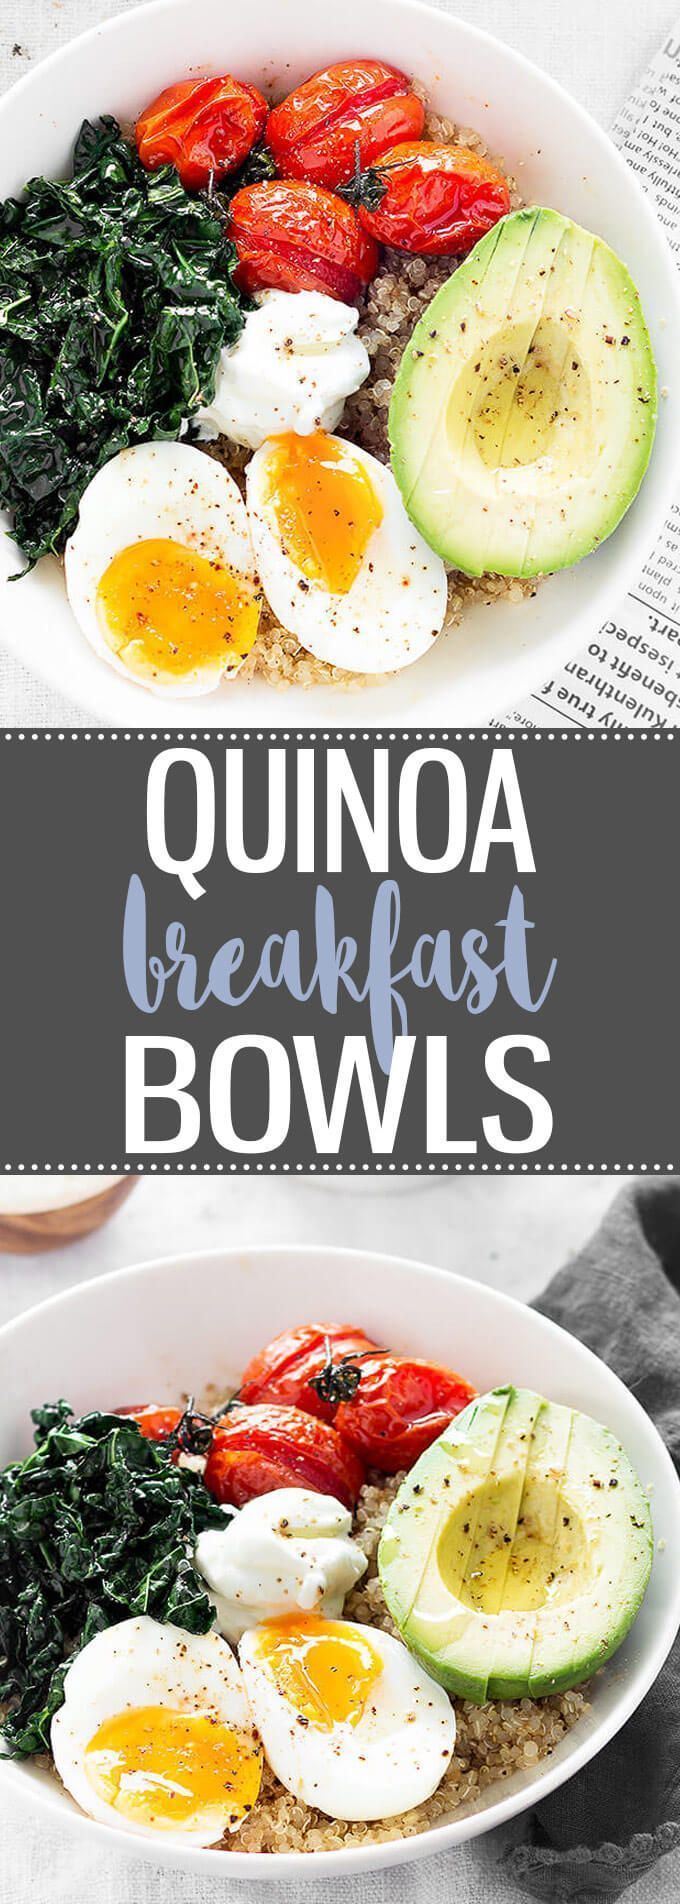 Savory Quinoa Breakfast Bowls - A hearty bowl great for breakfast, brunch, or even dinner! #breakfast #bowl #healthy via @easyasapplepie